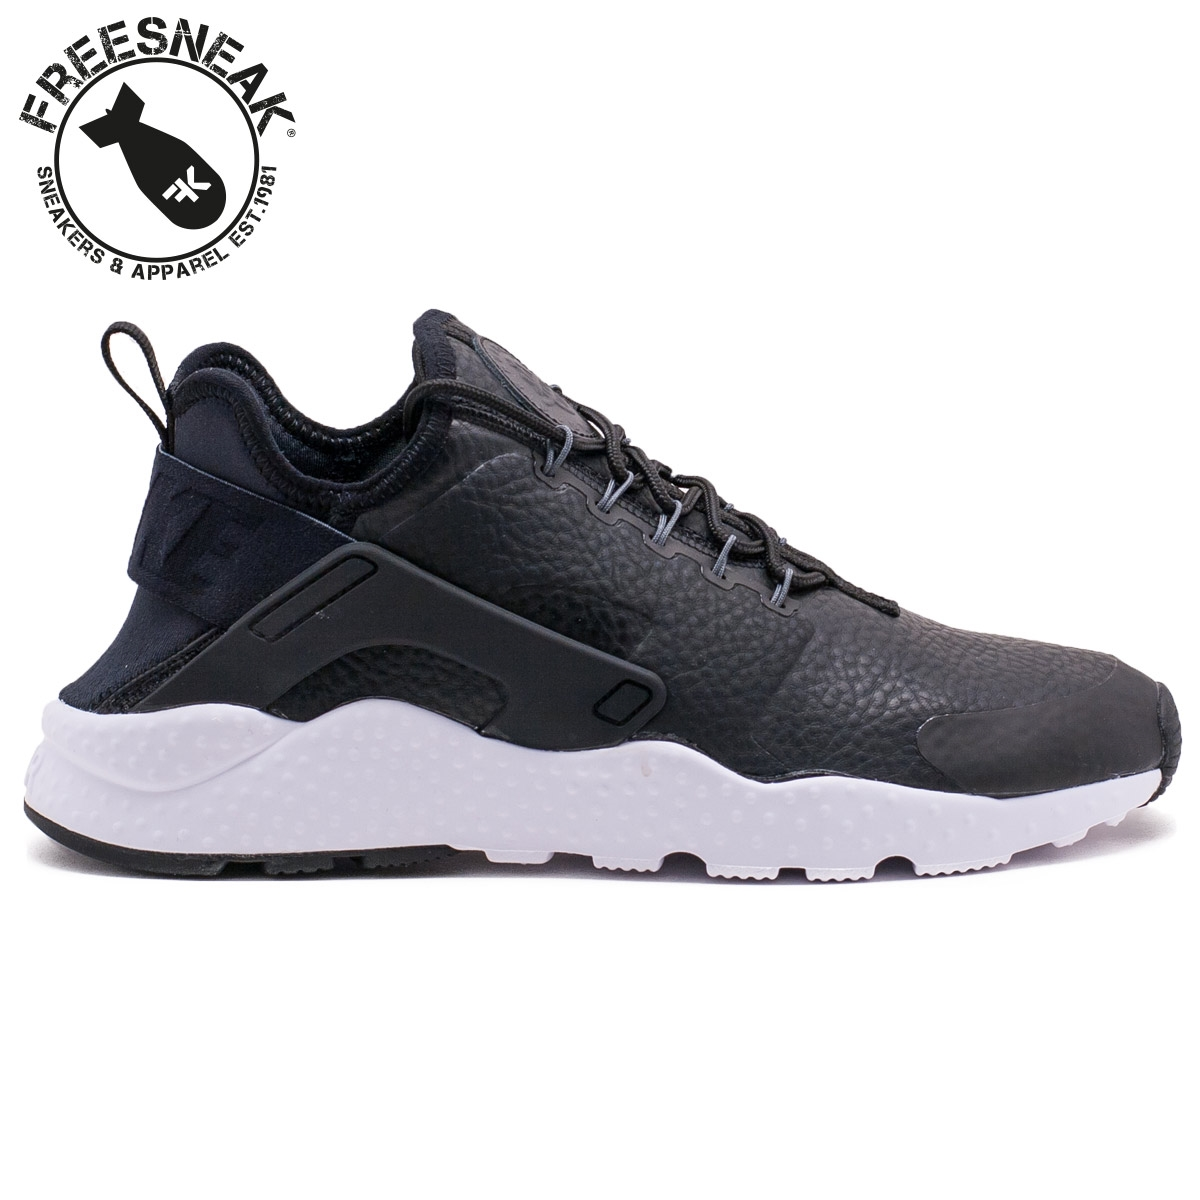 NIKE Air Huarache Run Ultra Premium Nero Black 859511001